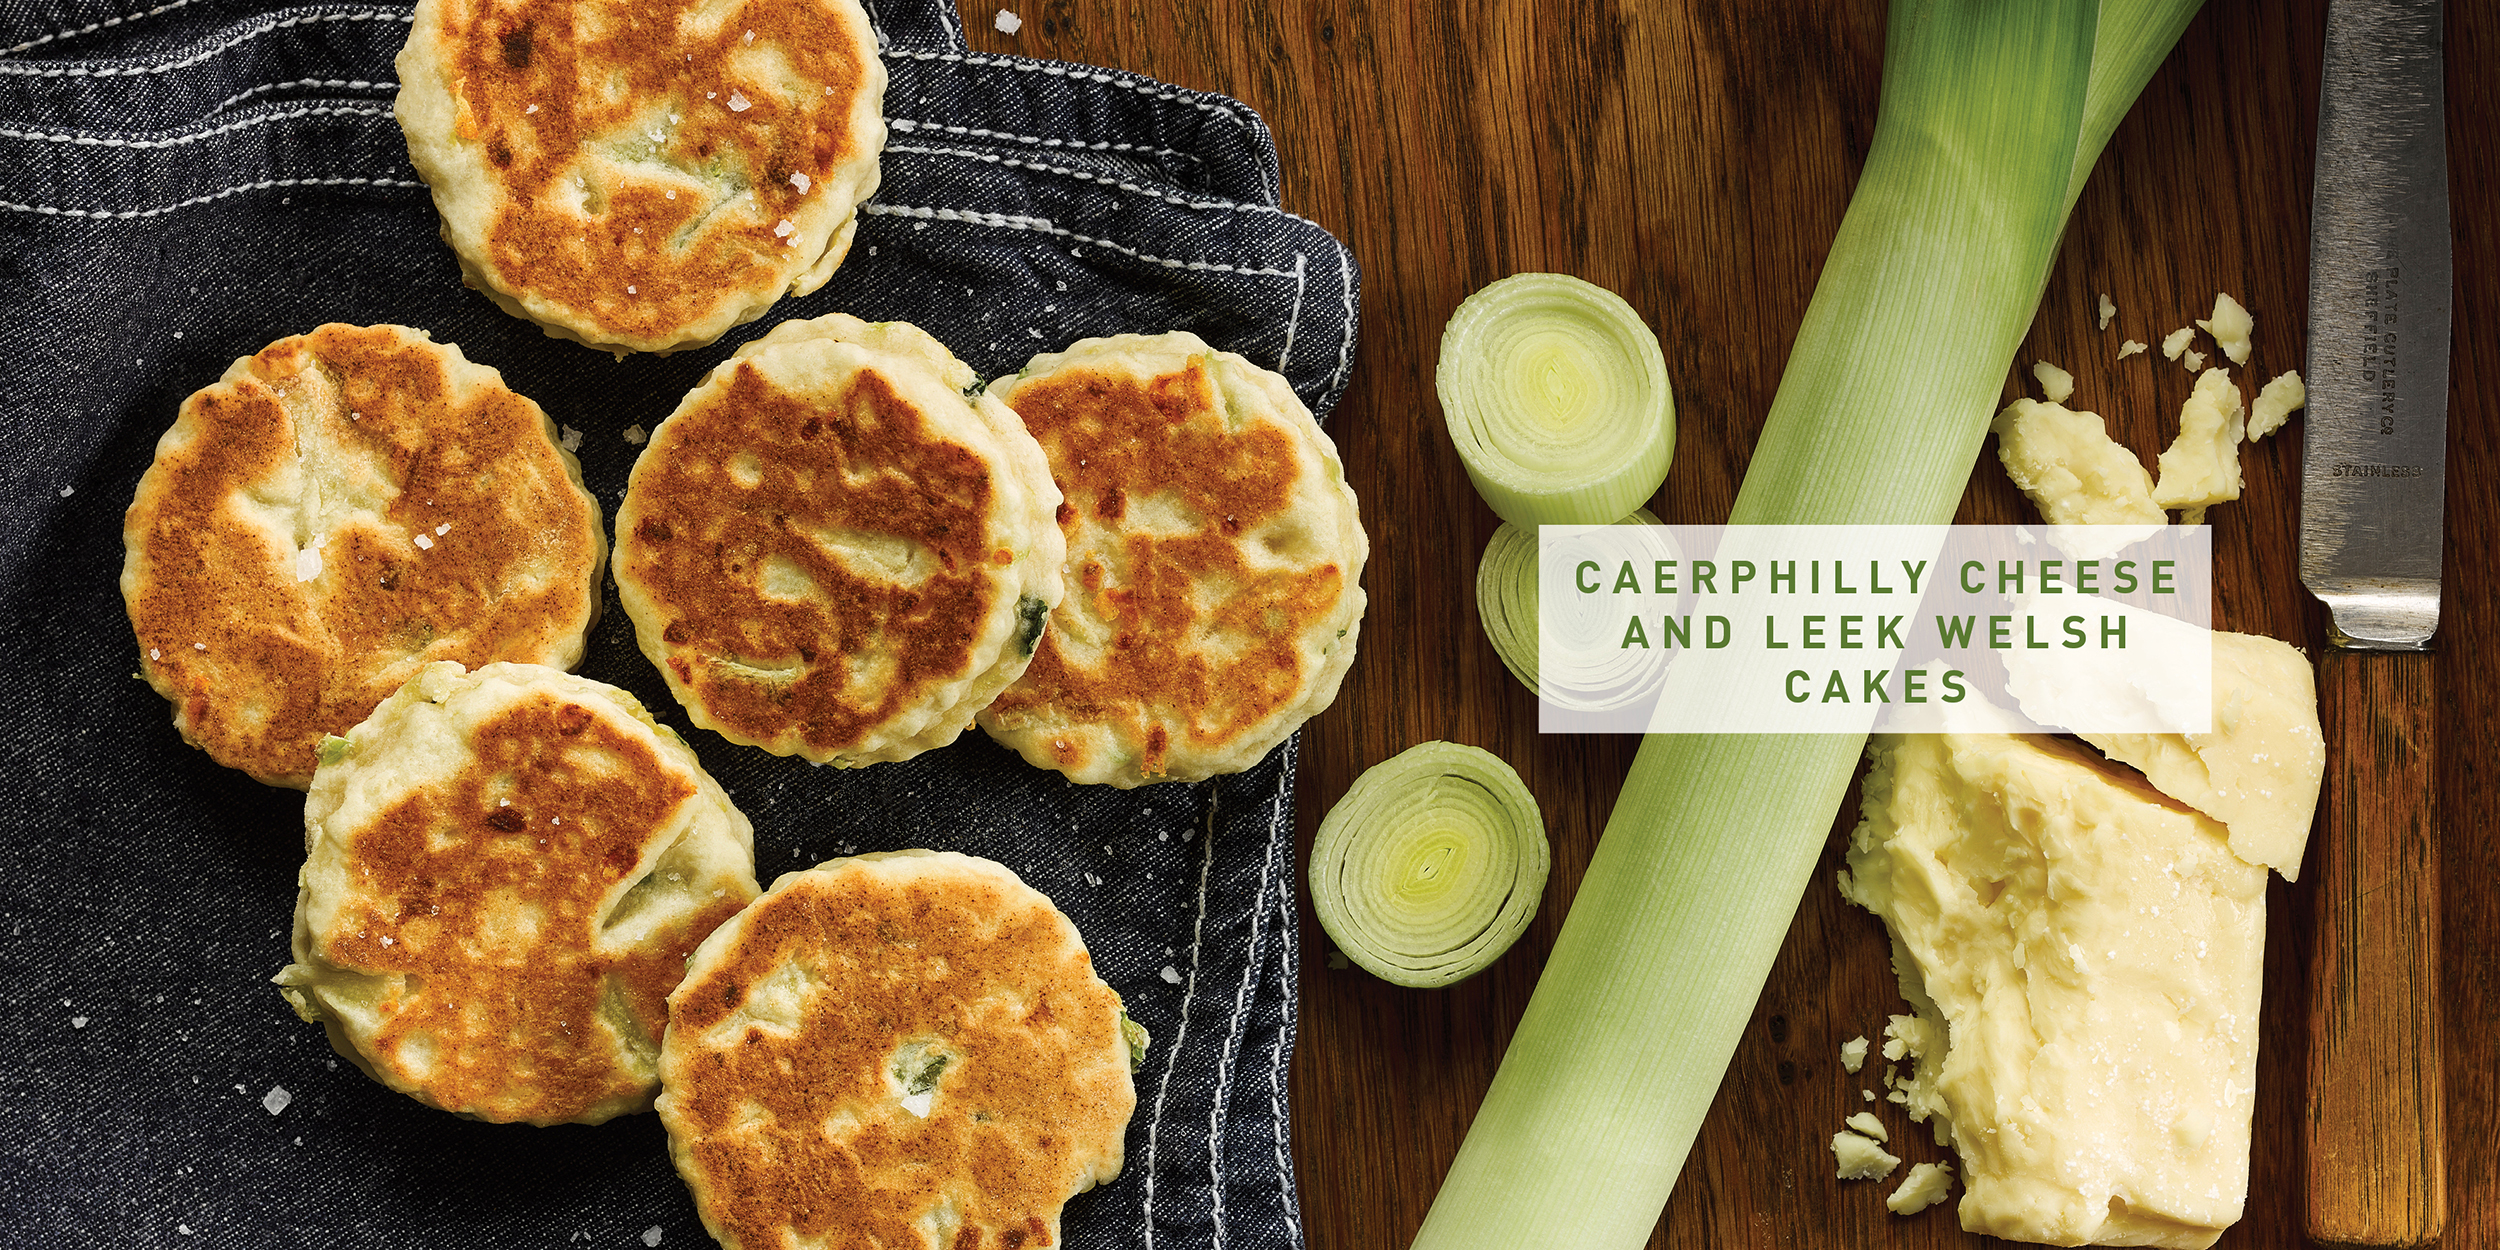 caerphilly-cheese-and-leek-welsh-cakes-huw-jones